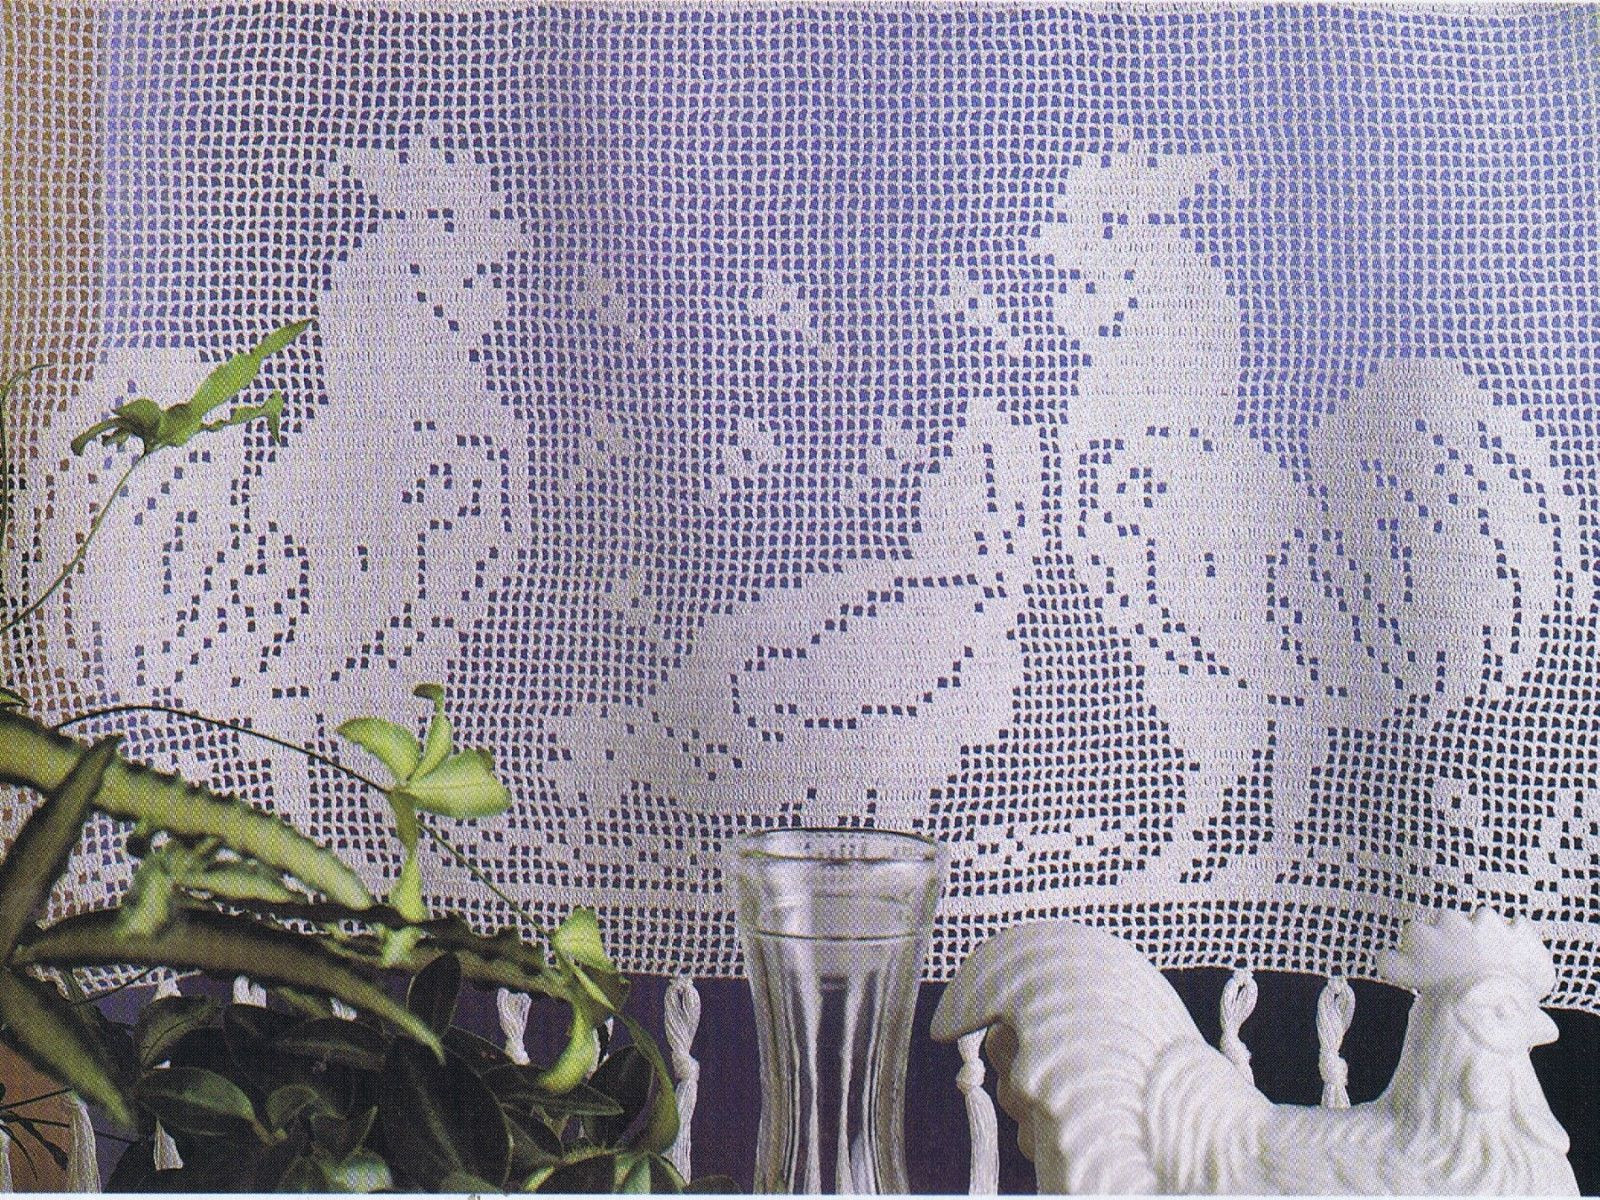 Crochet Patterns Lace Filet Curtains Pillows Tablecloth Runners ...